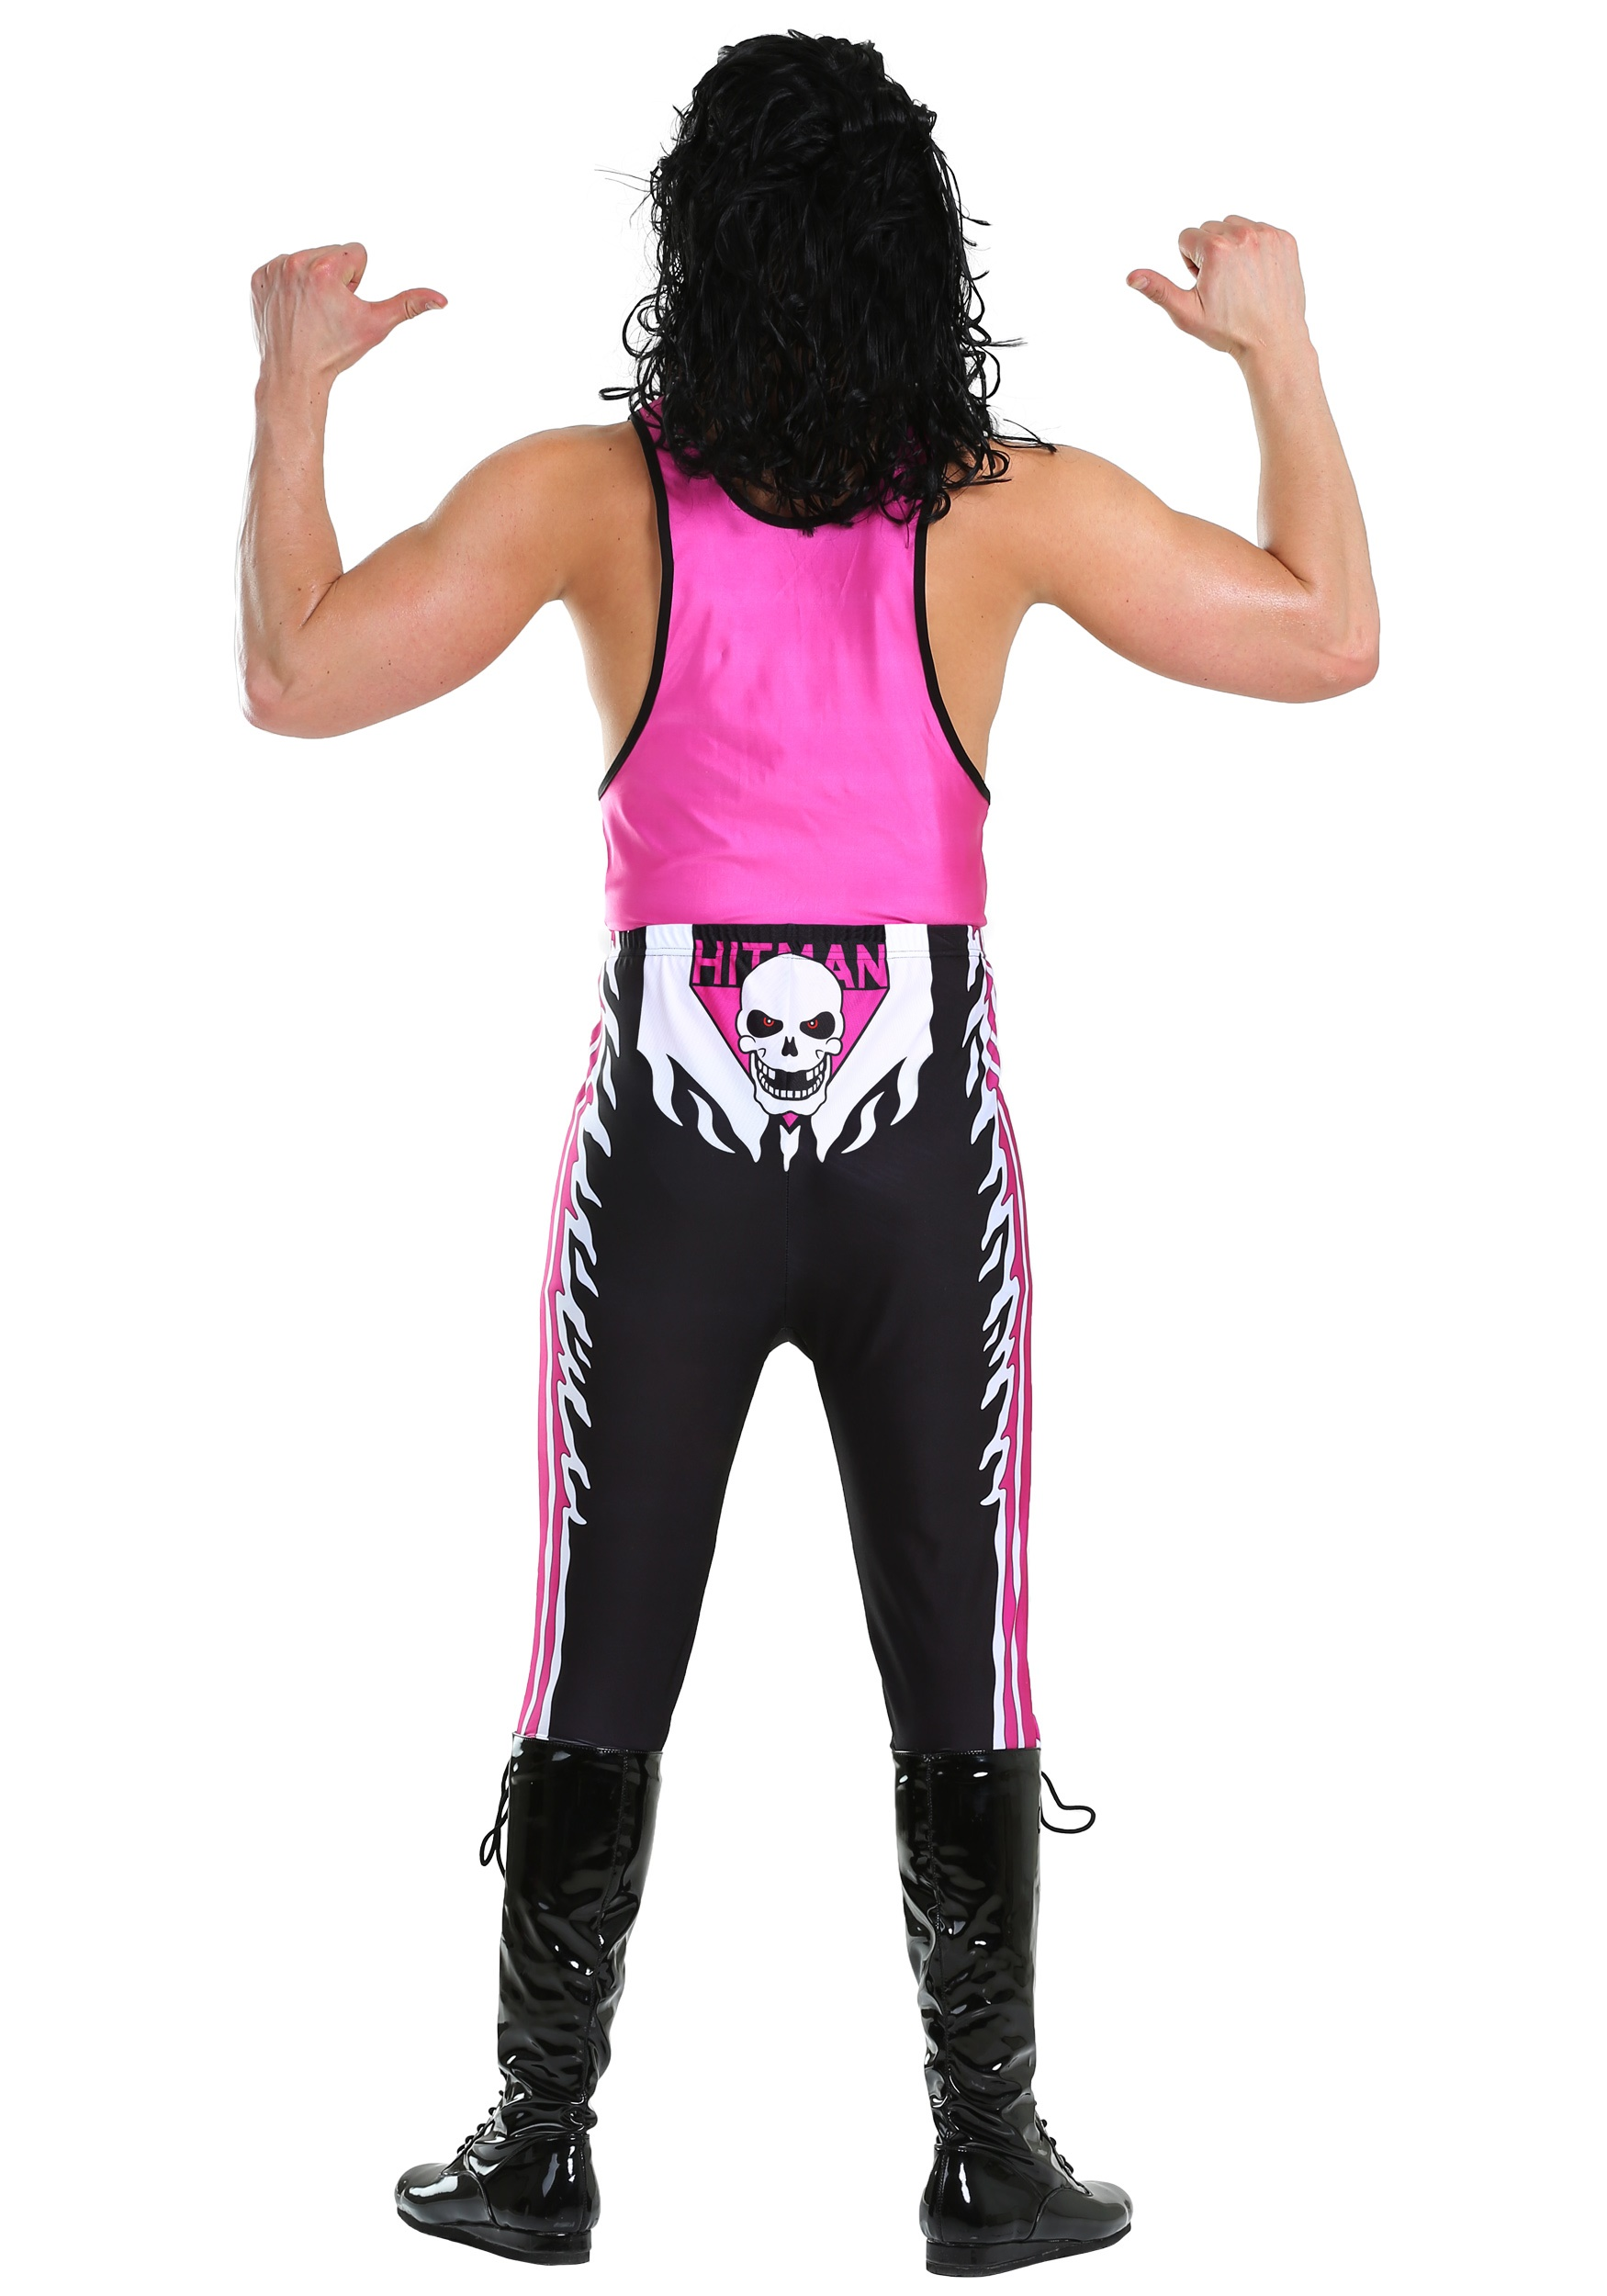 Wwe bret hart costume for men wwe bret hart mens costume solutioingenieria